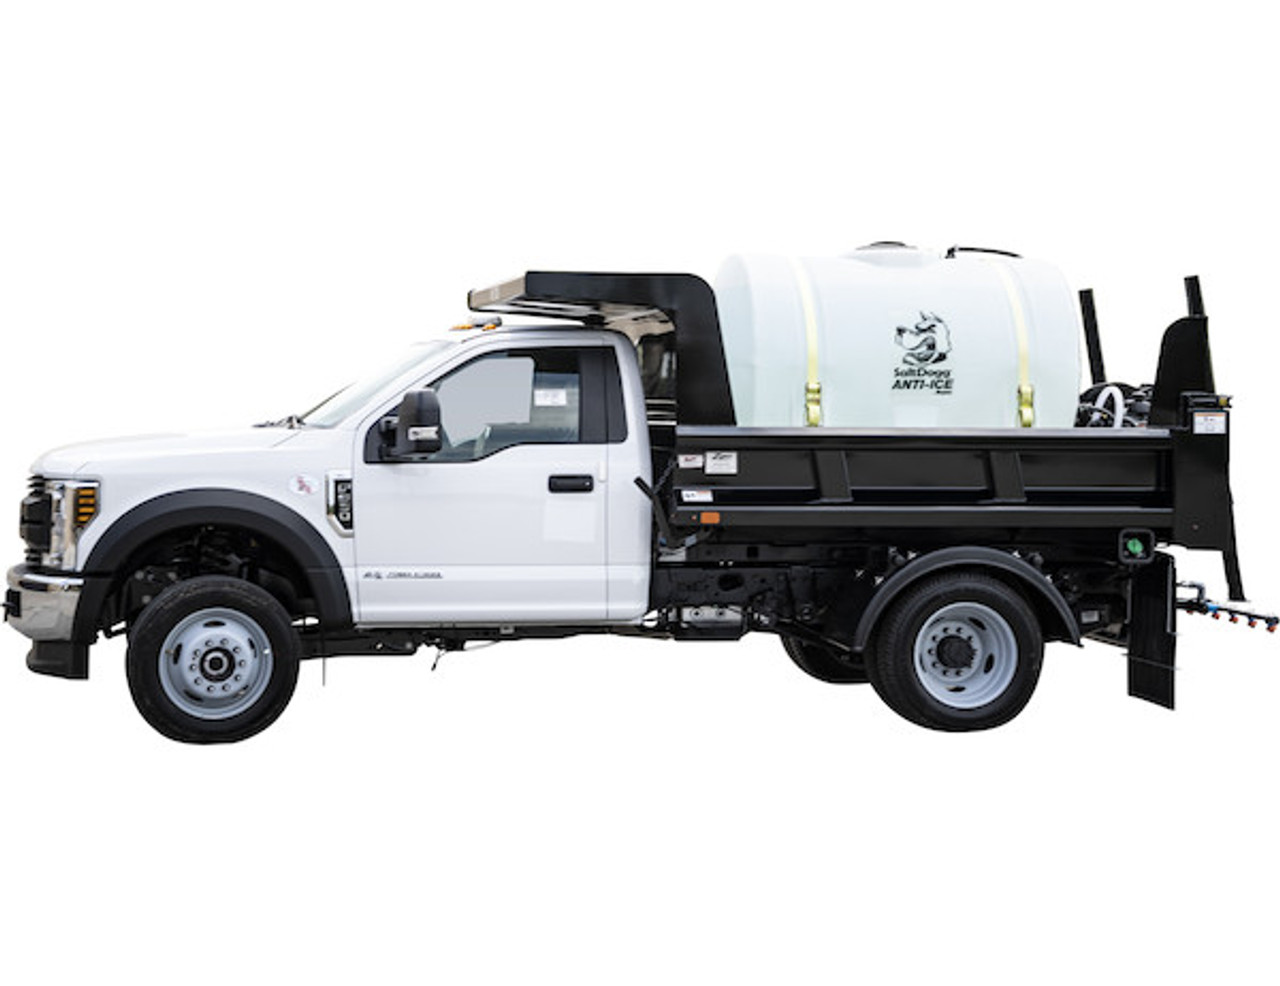 6191120 BUYERS SALTDOGG 550 GALLON GAS-POWERED ANTI-ICE SYSTEM WITH MANUAL APPLICATION RATE CONTROL 3